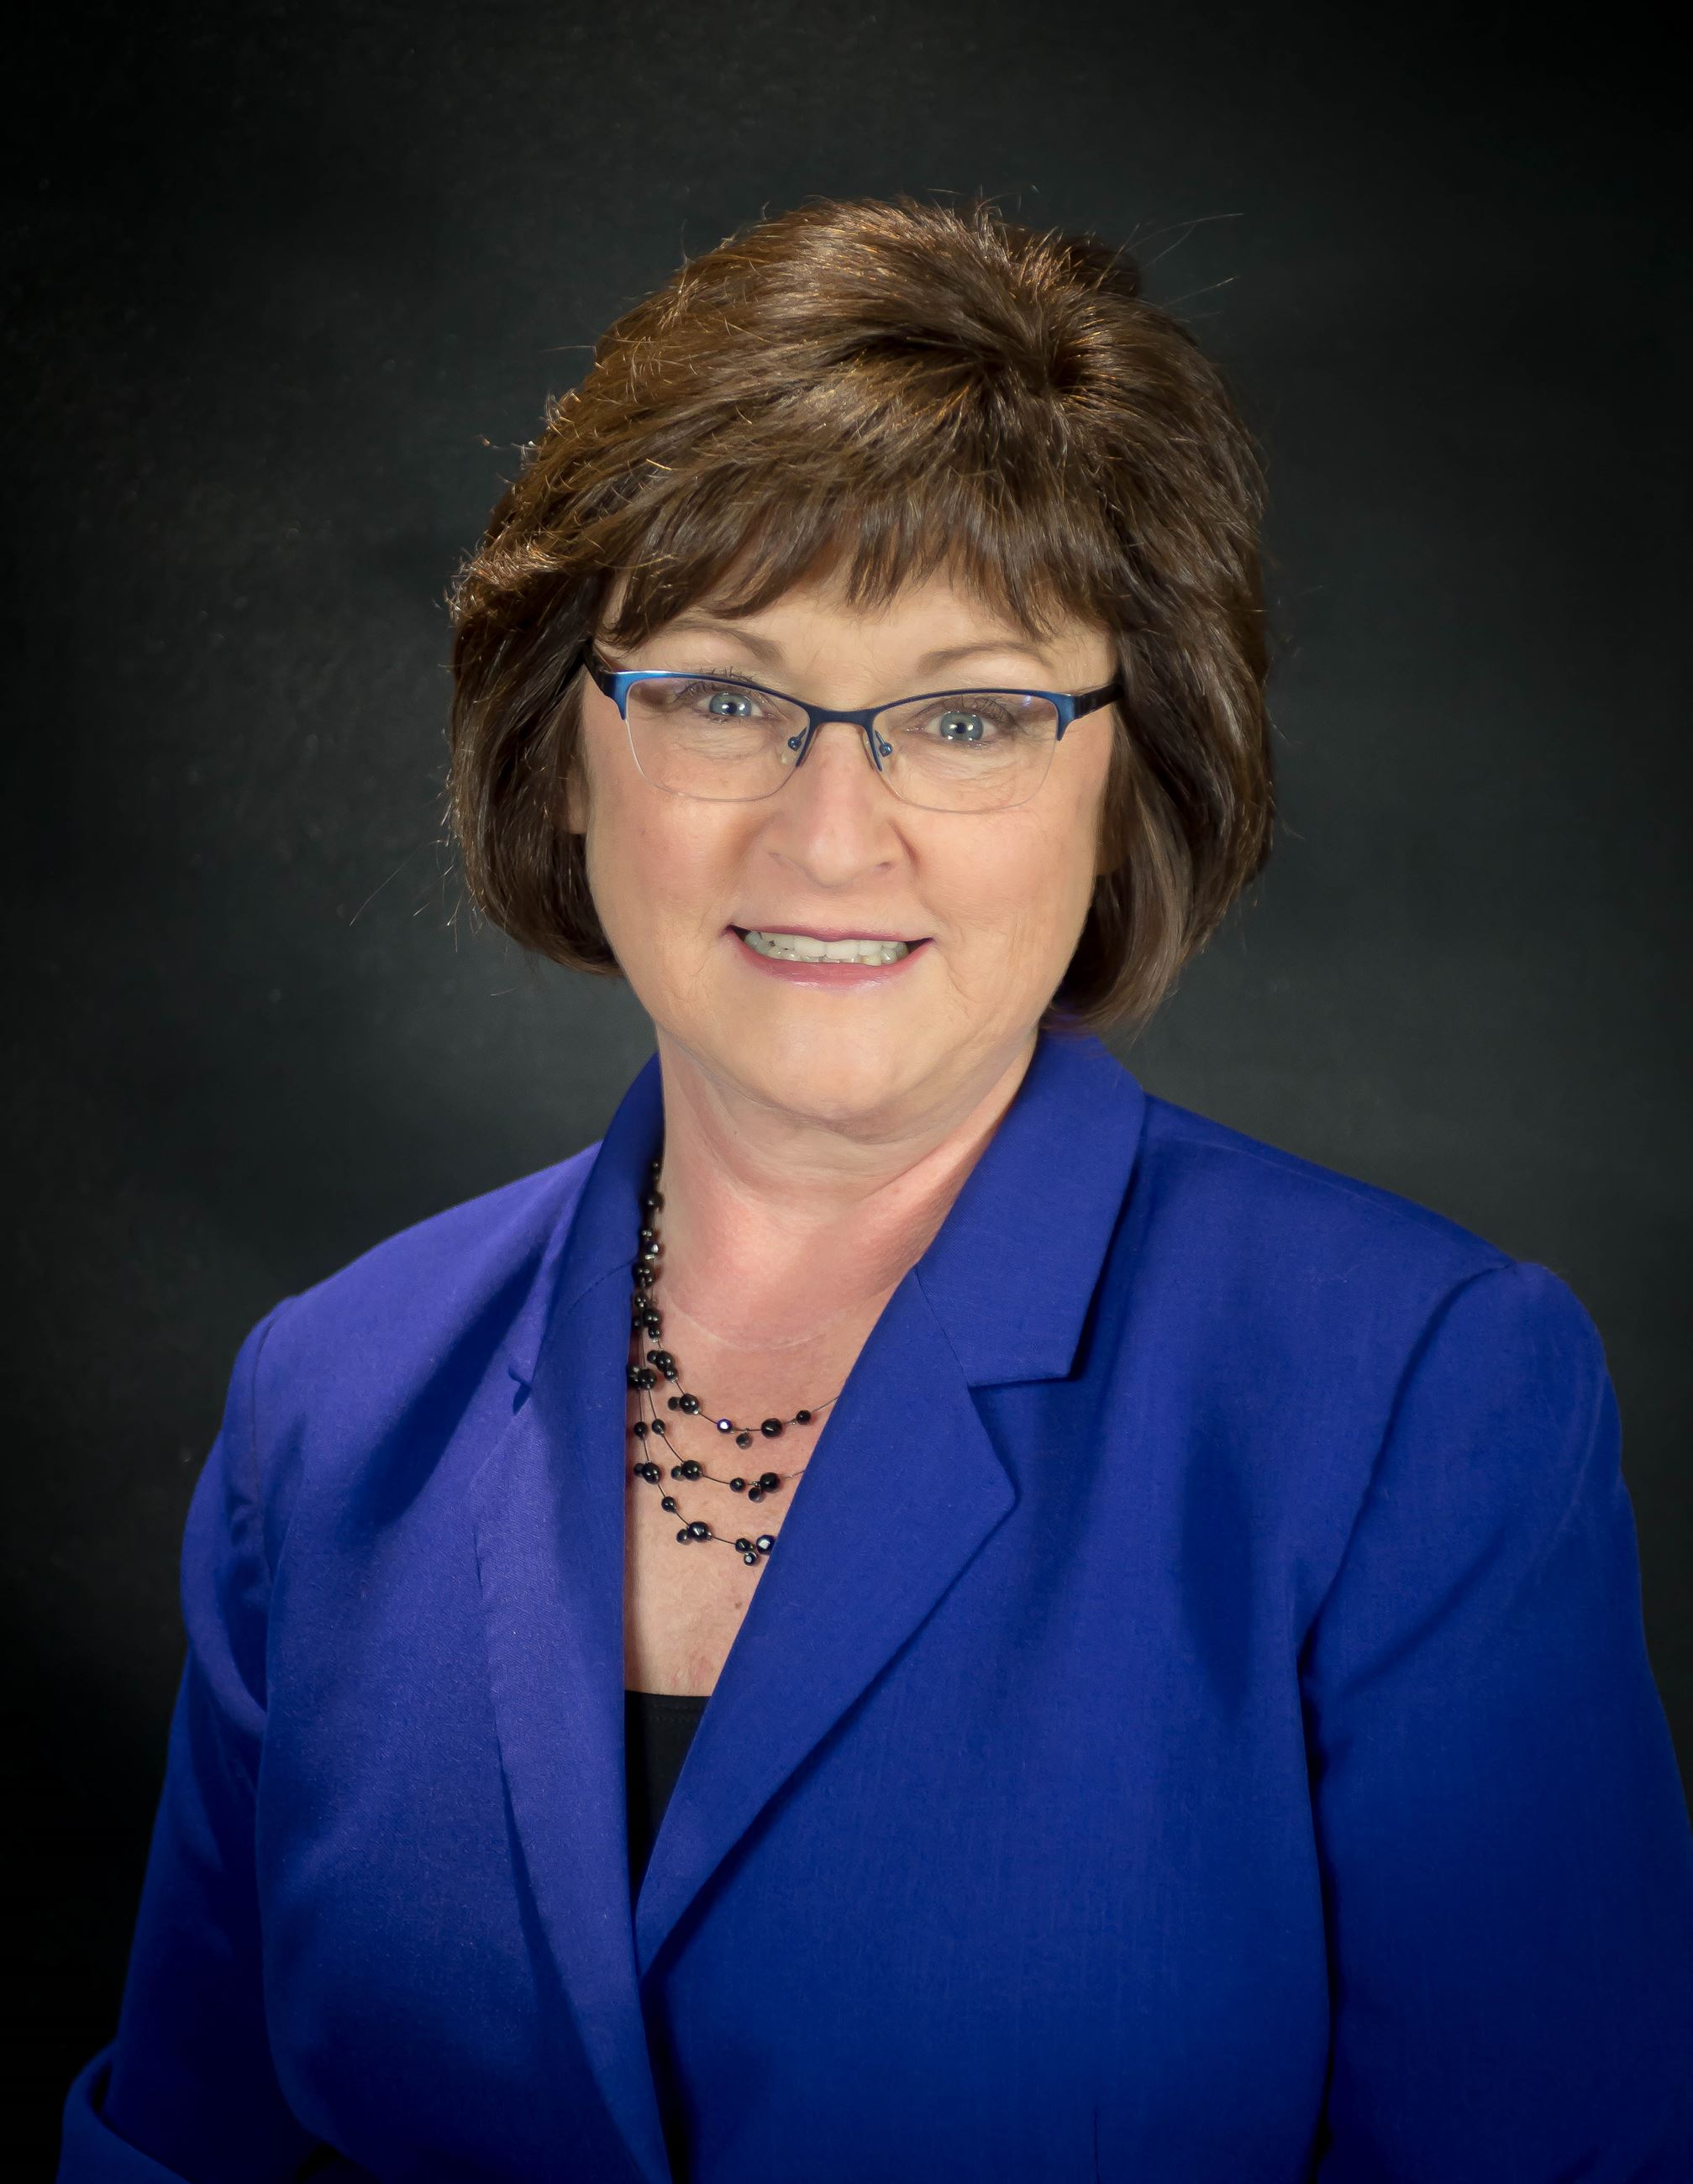 Mayor Carla J. Filkins